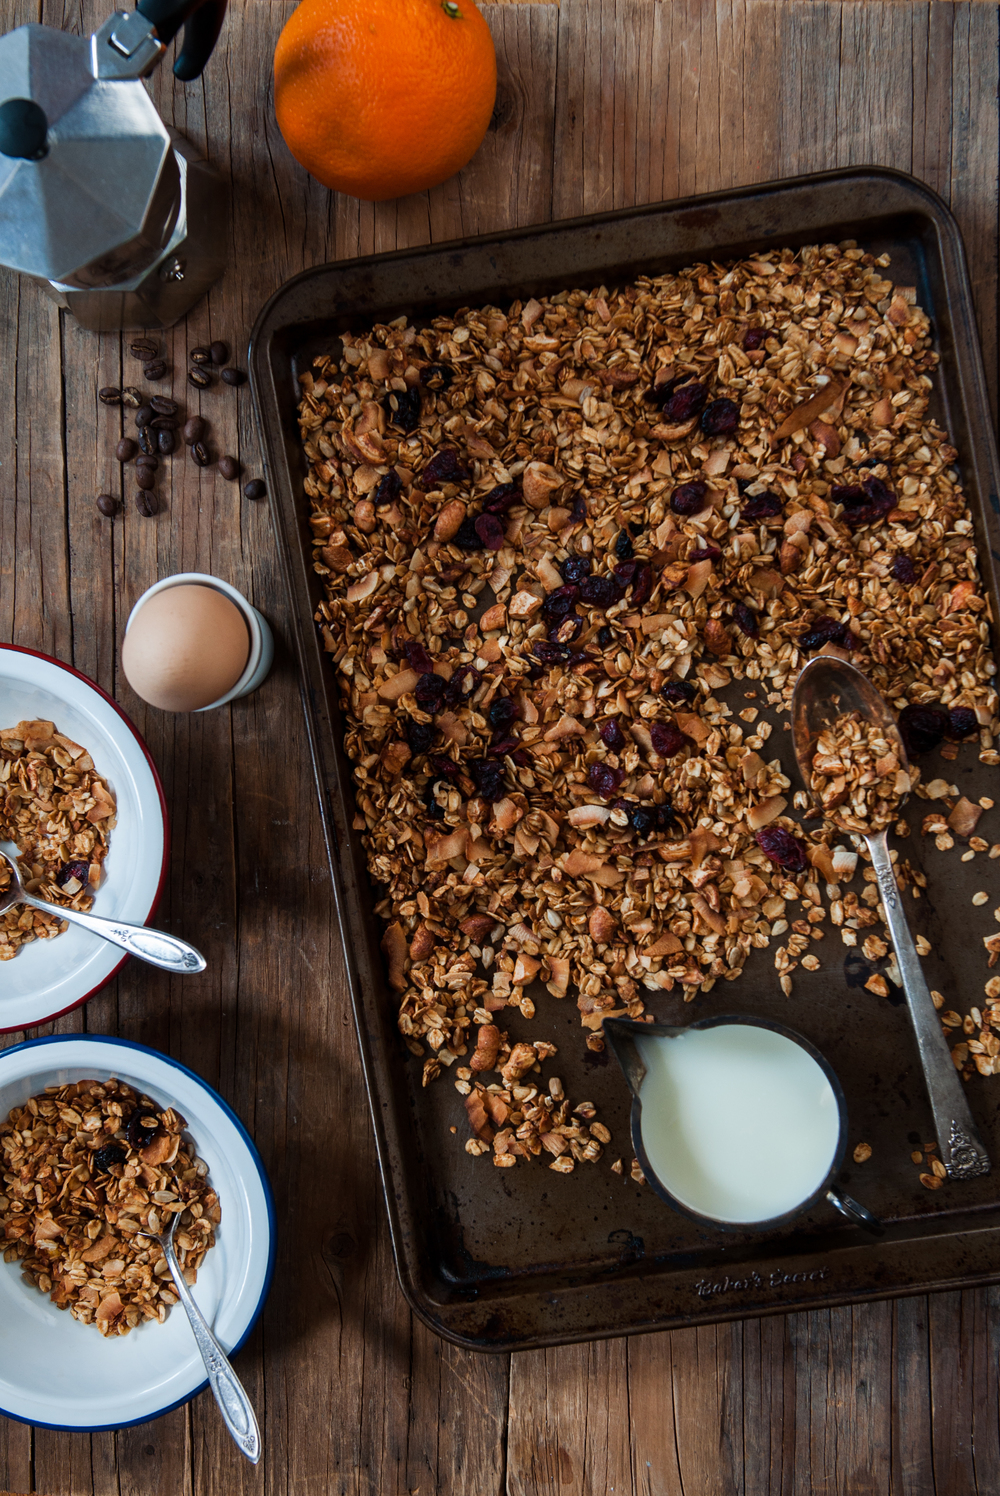 TIPS FOR THE BEST HOMEMADE GRANOLA